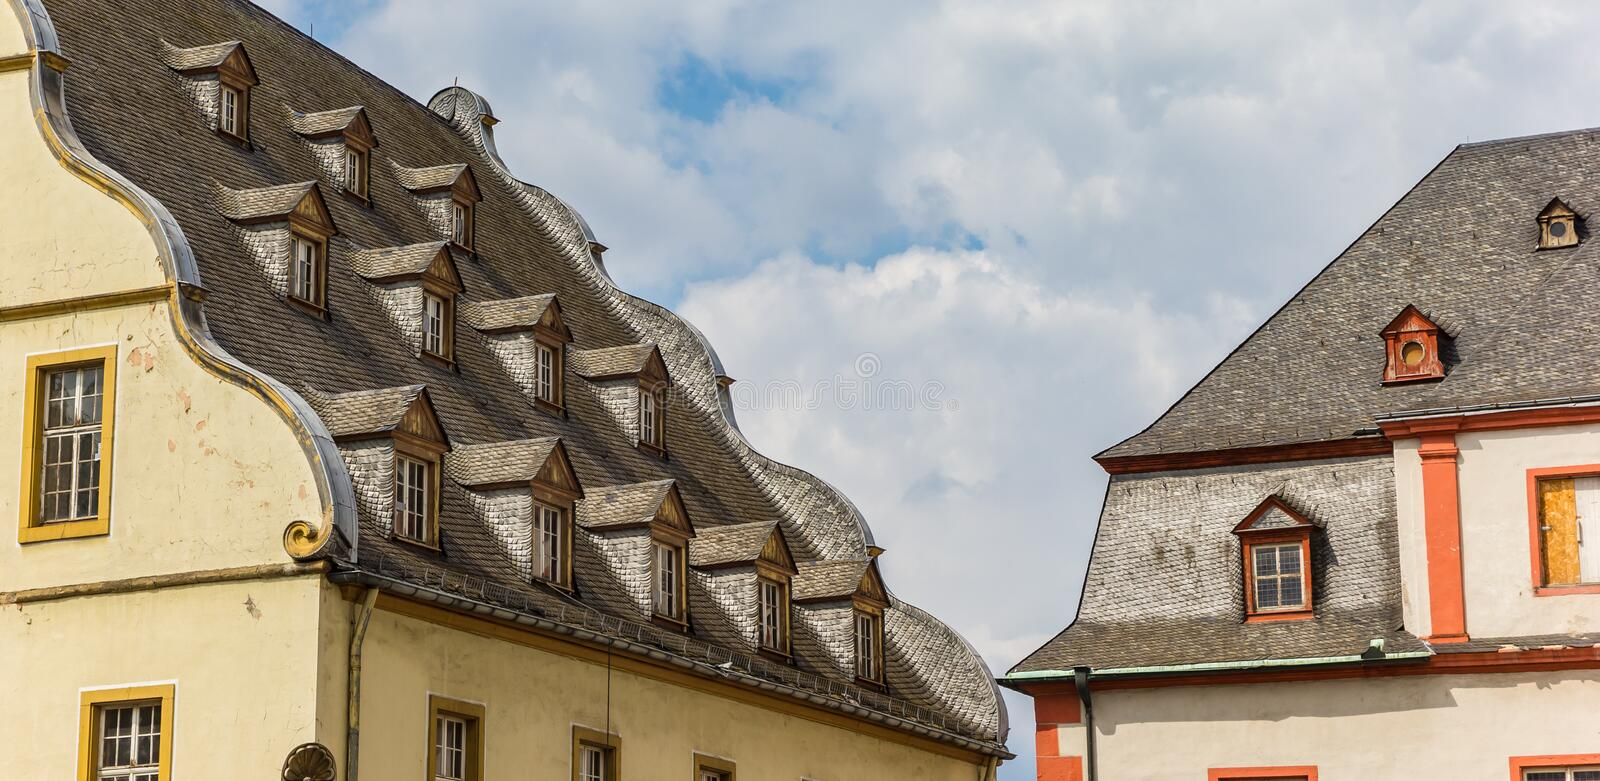 Little windows on the roof of the Burresheimer Hof building in Koblenz. Germany royalty free stock photo